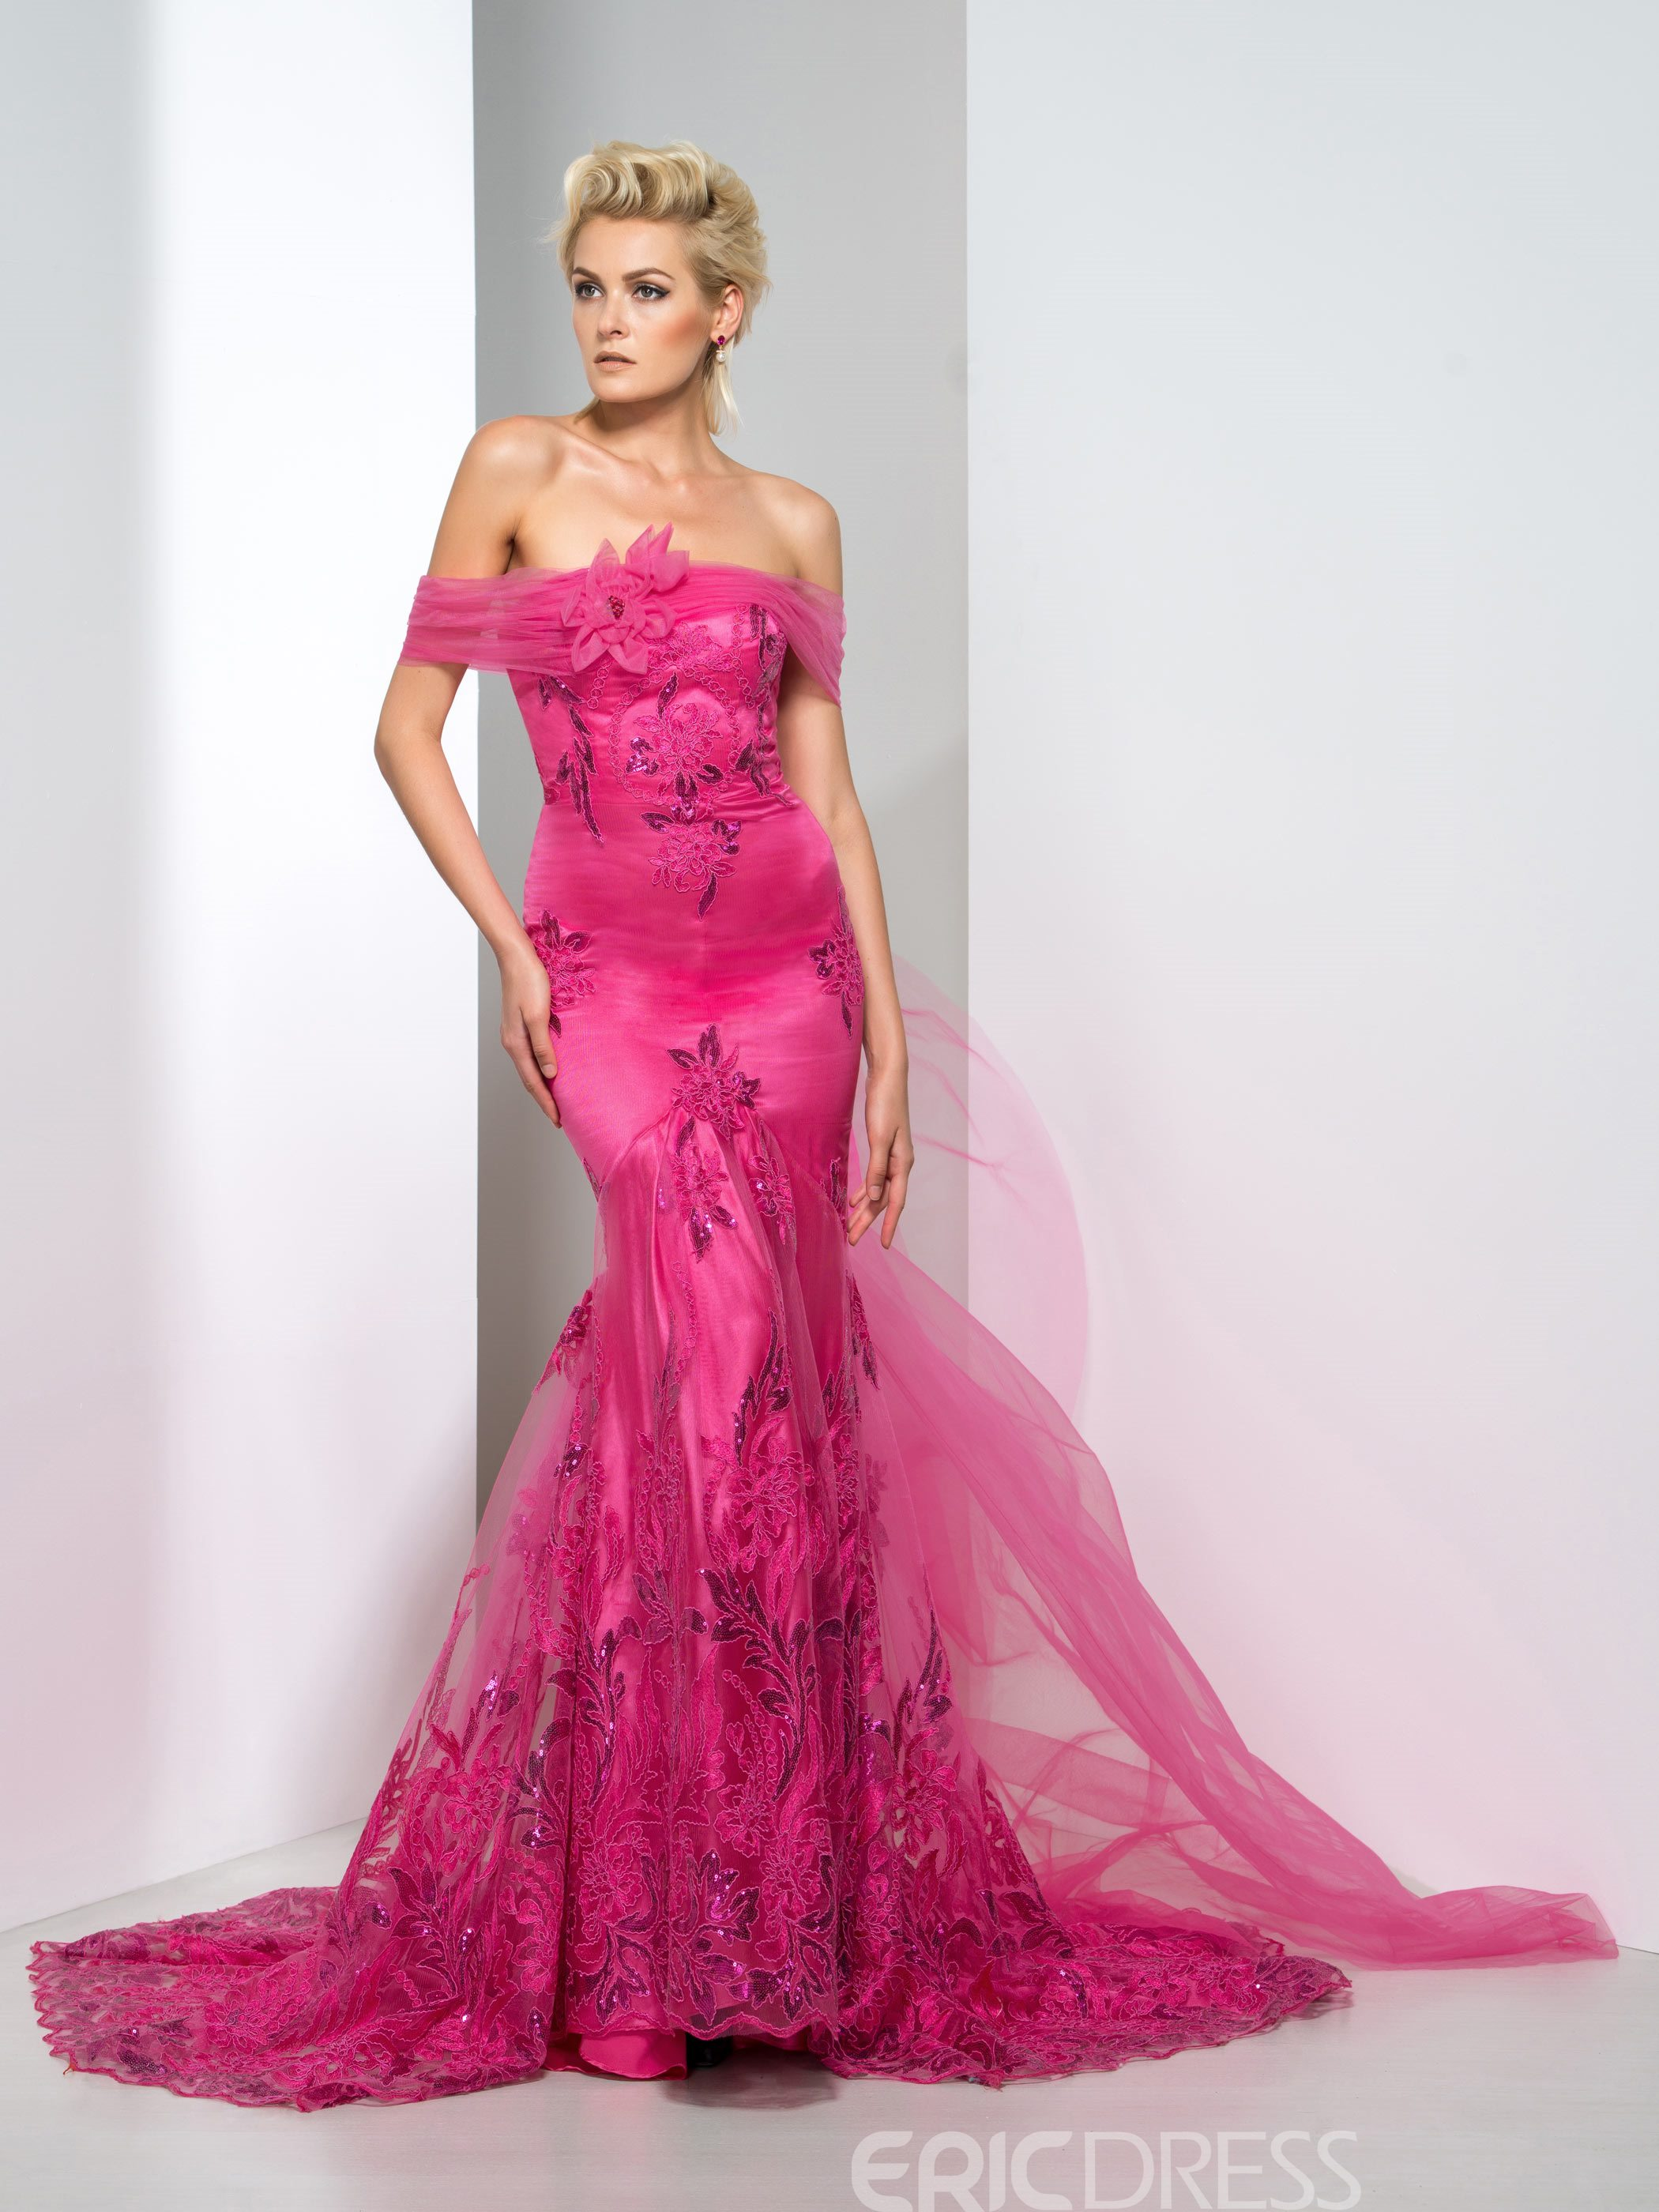 98cc8d2f5445 Ericdress Off-The-Shoulder Appliques Mermaid Evening Dress With Court Train